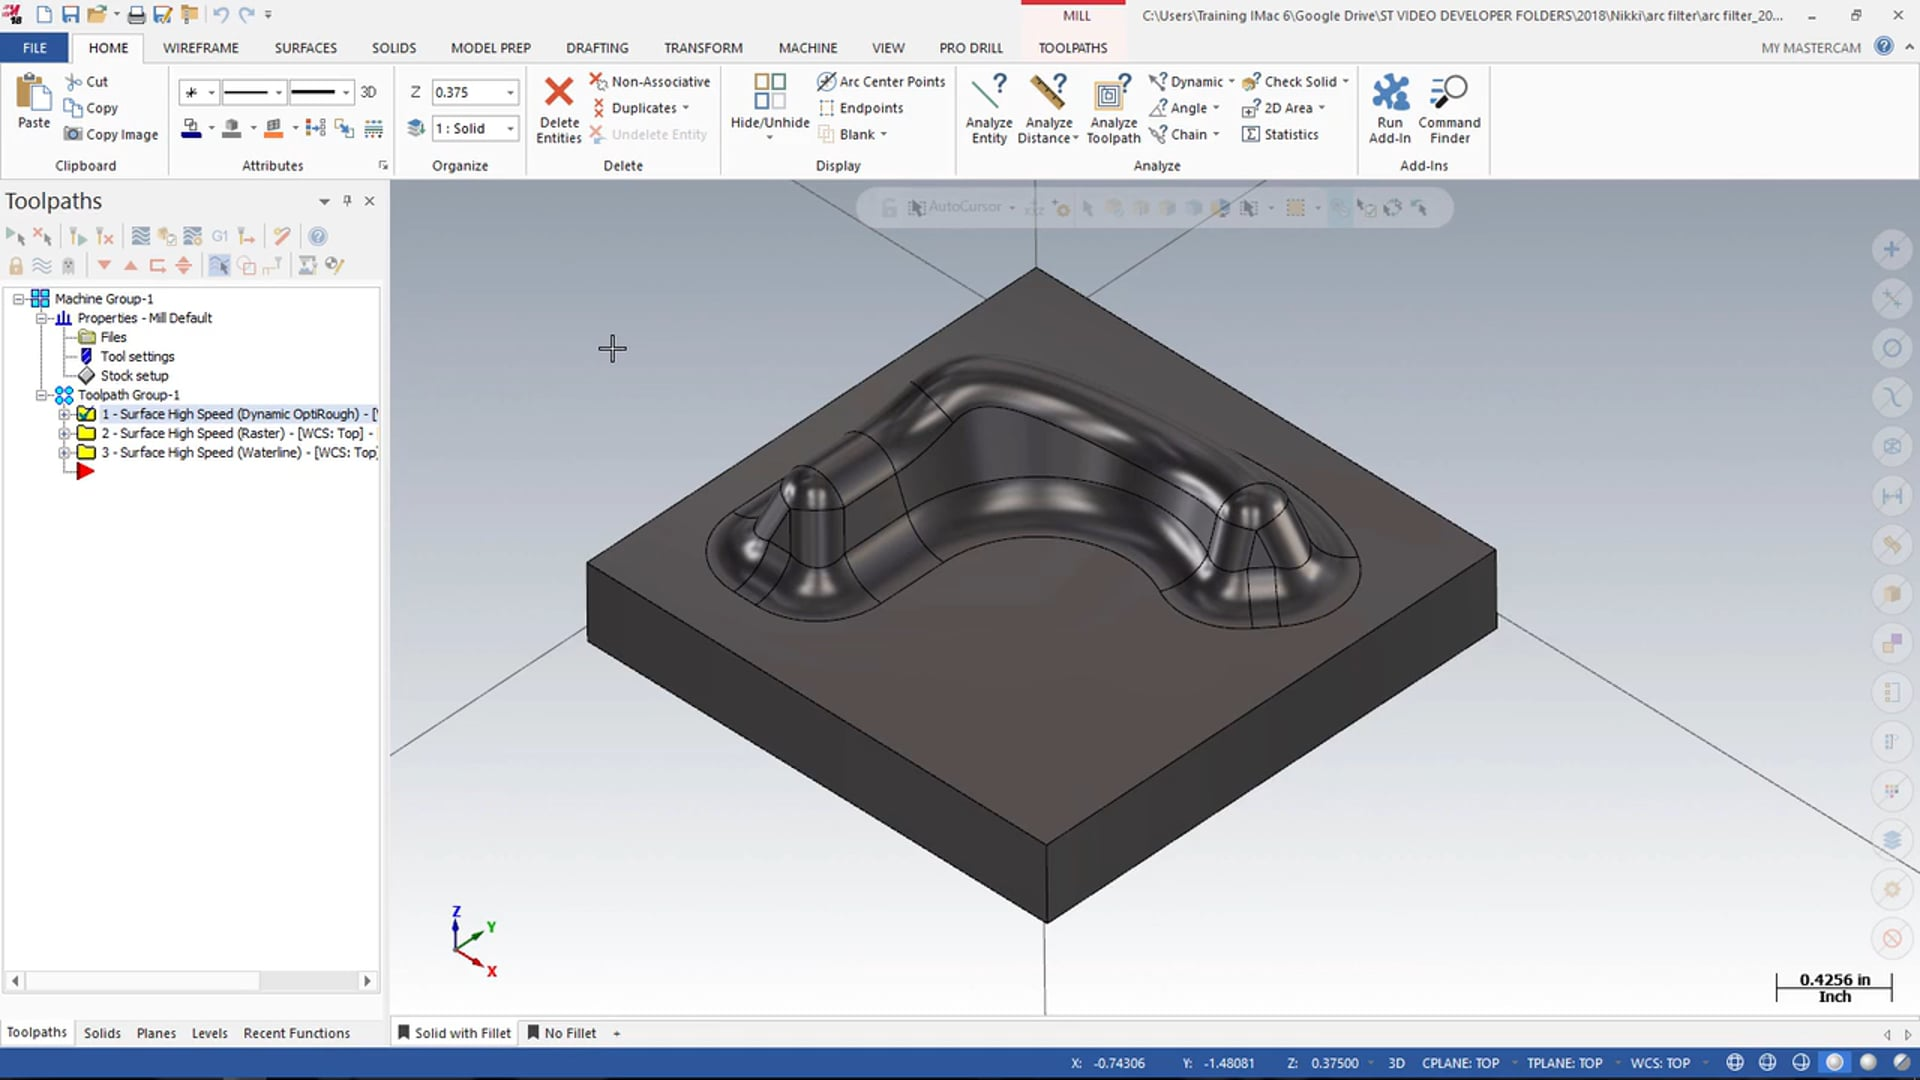 Additional Milling Options